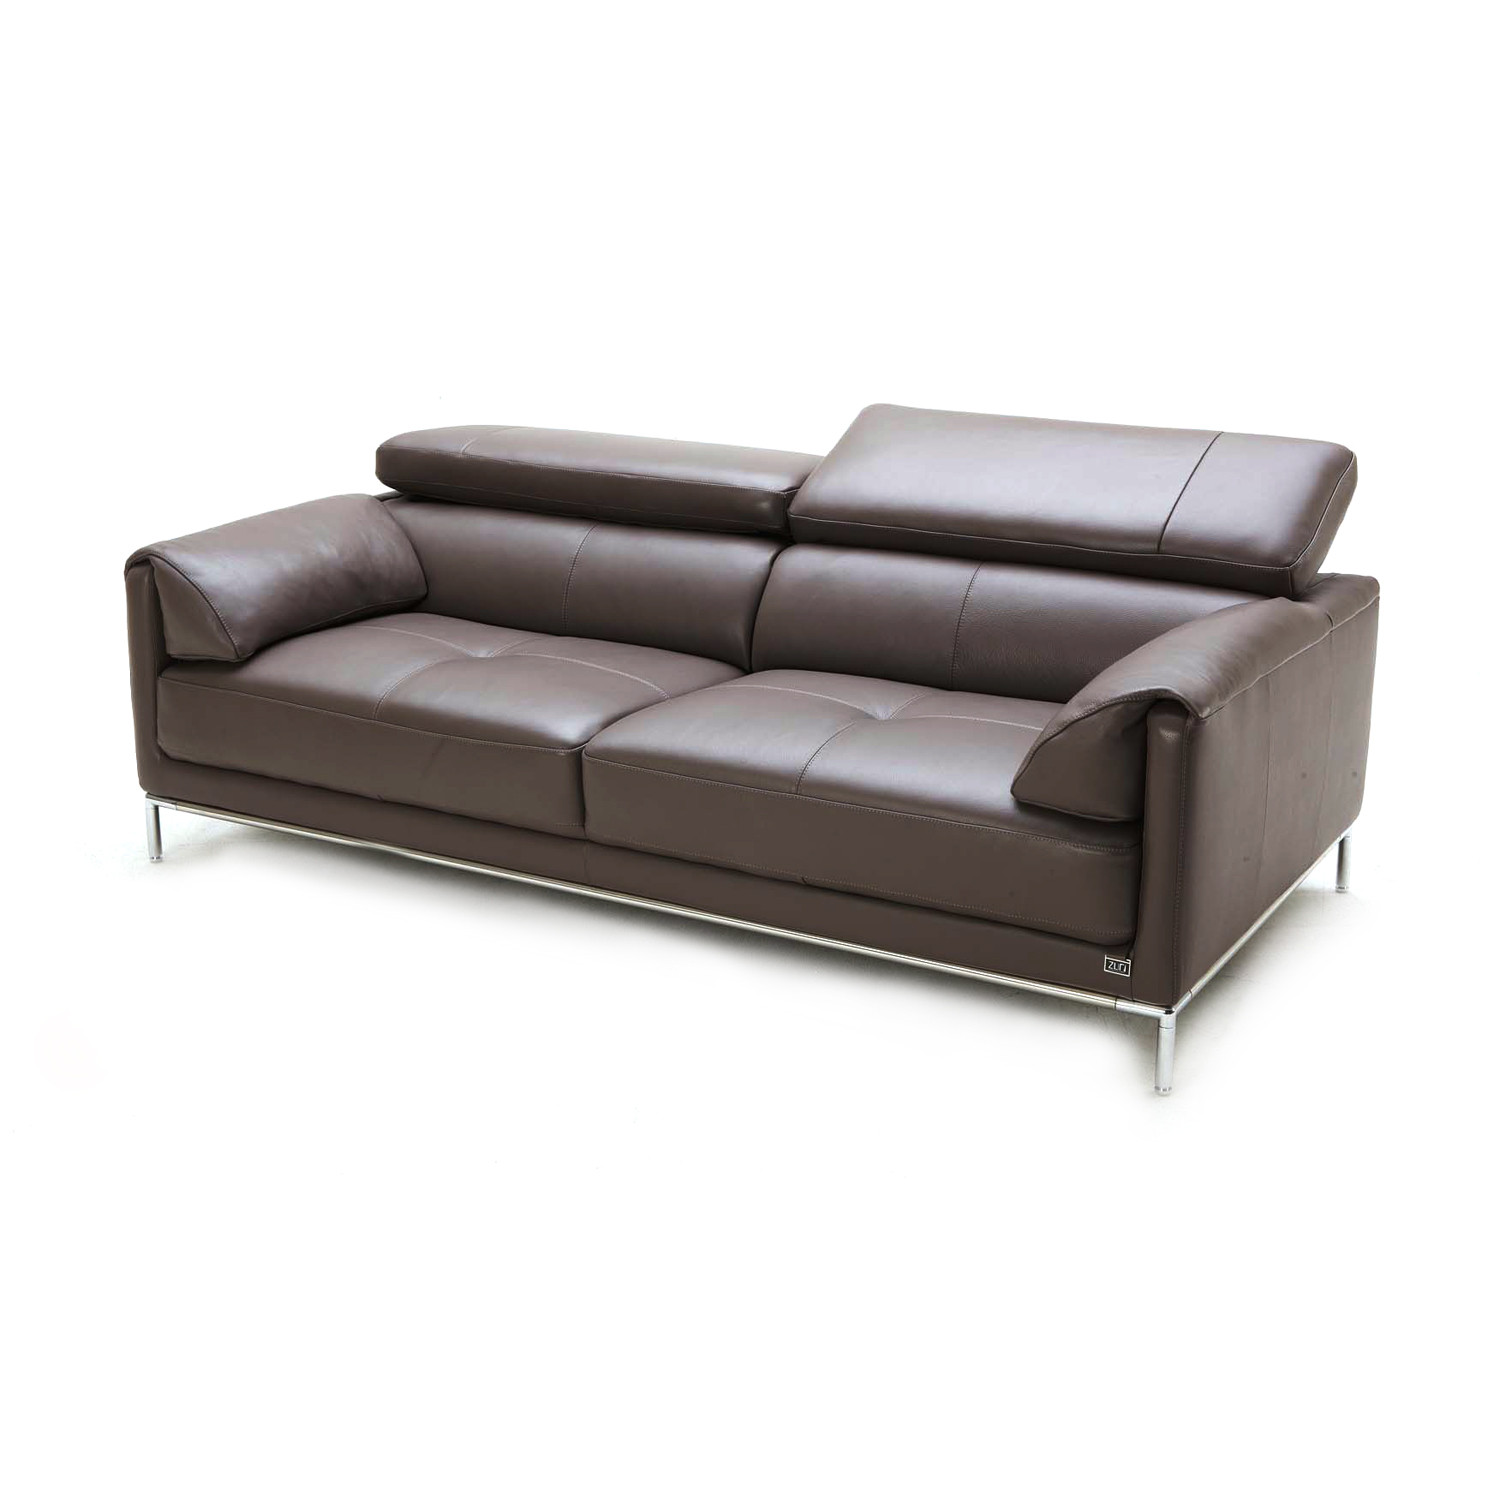 Eaton 2 piece sofa set zuri furniture touch of modern for Two piece sectional sofa sale